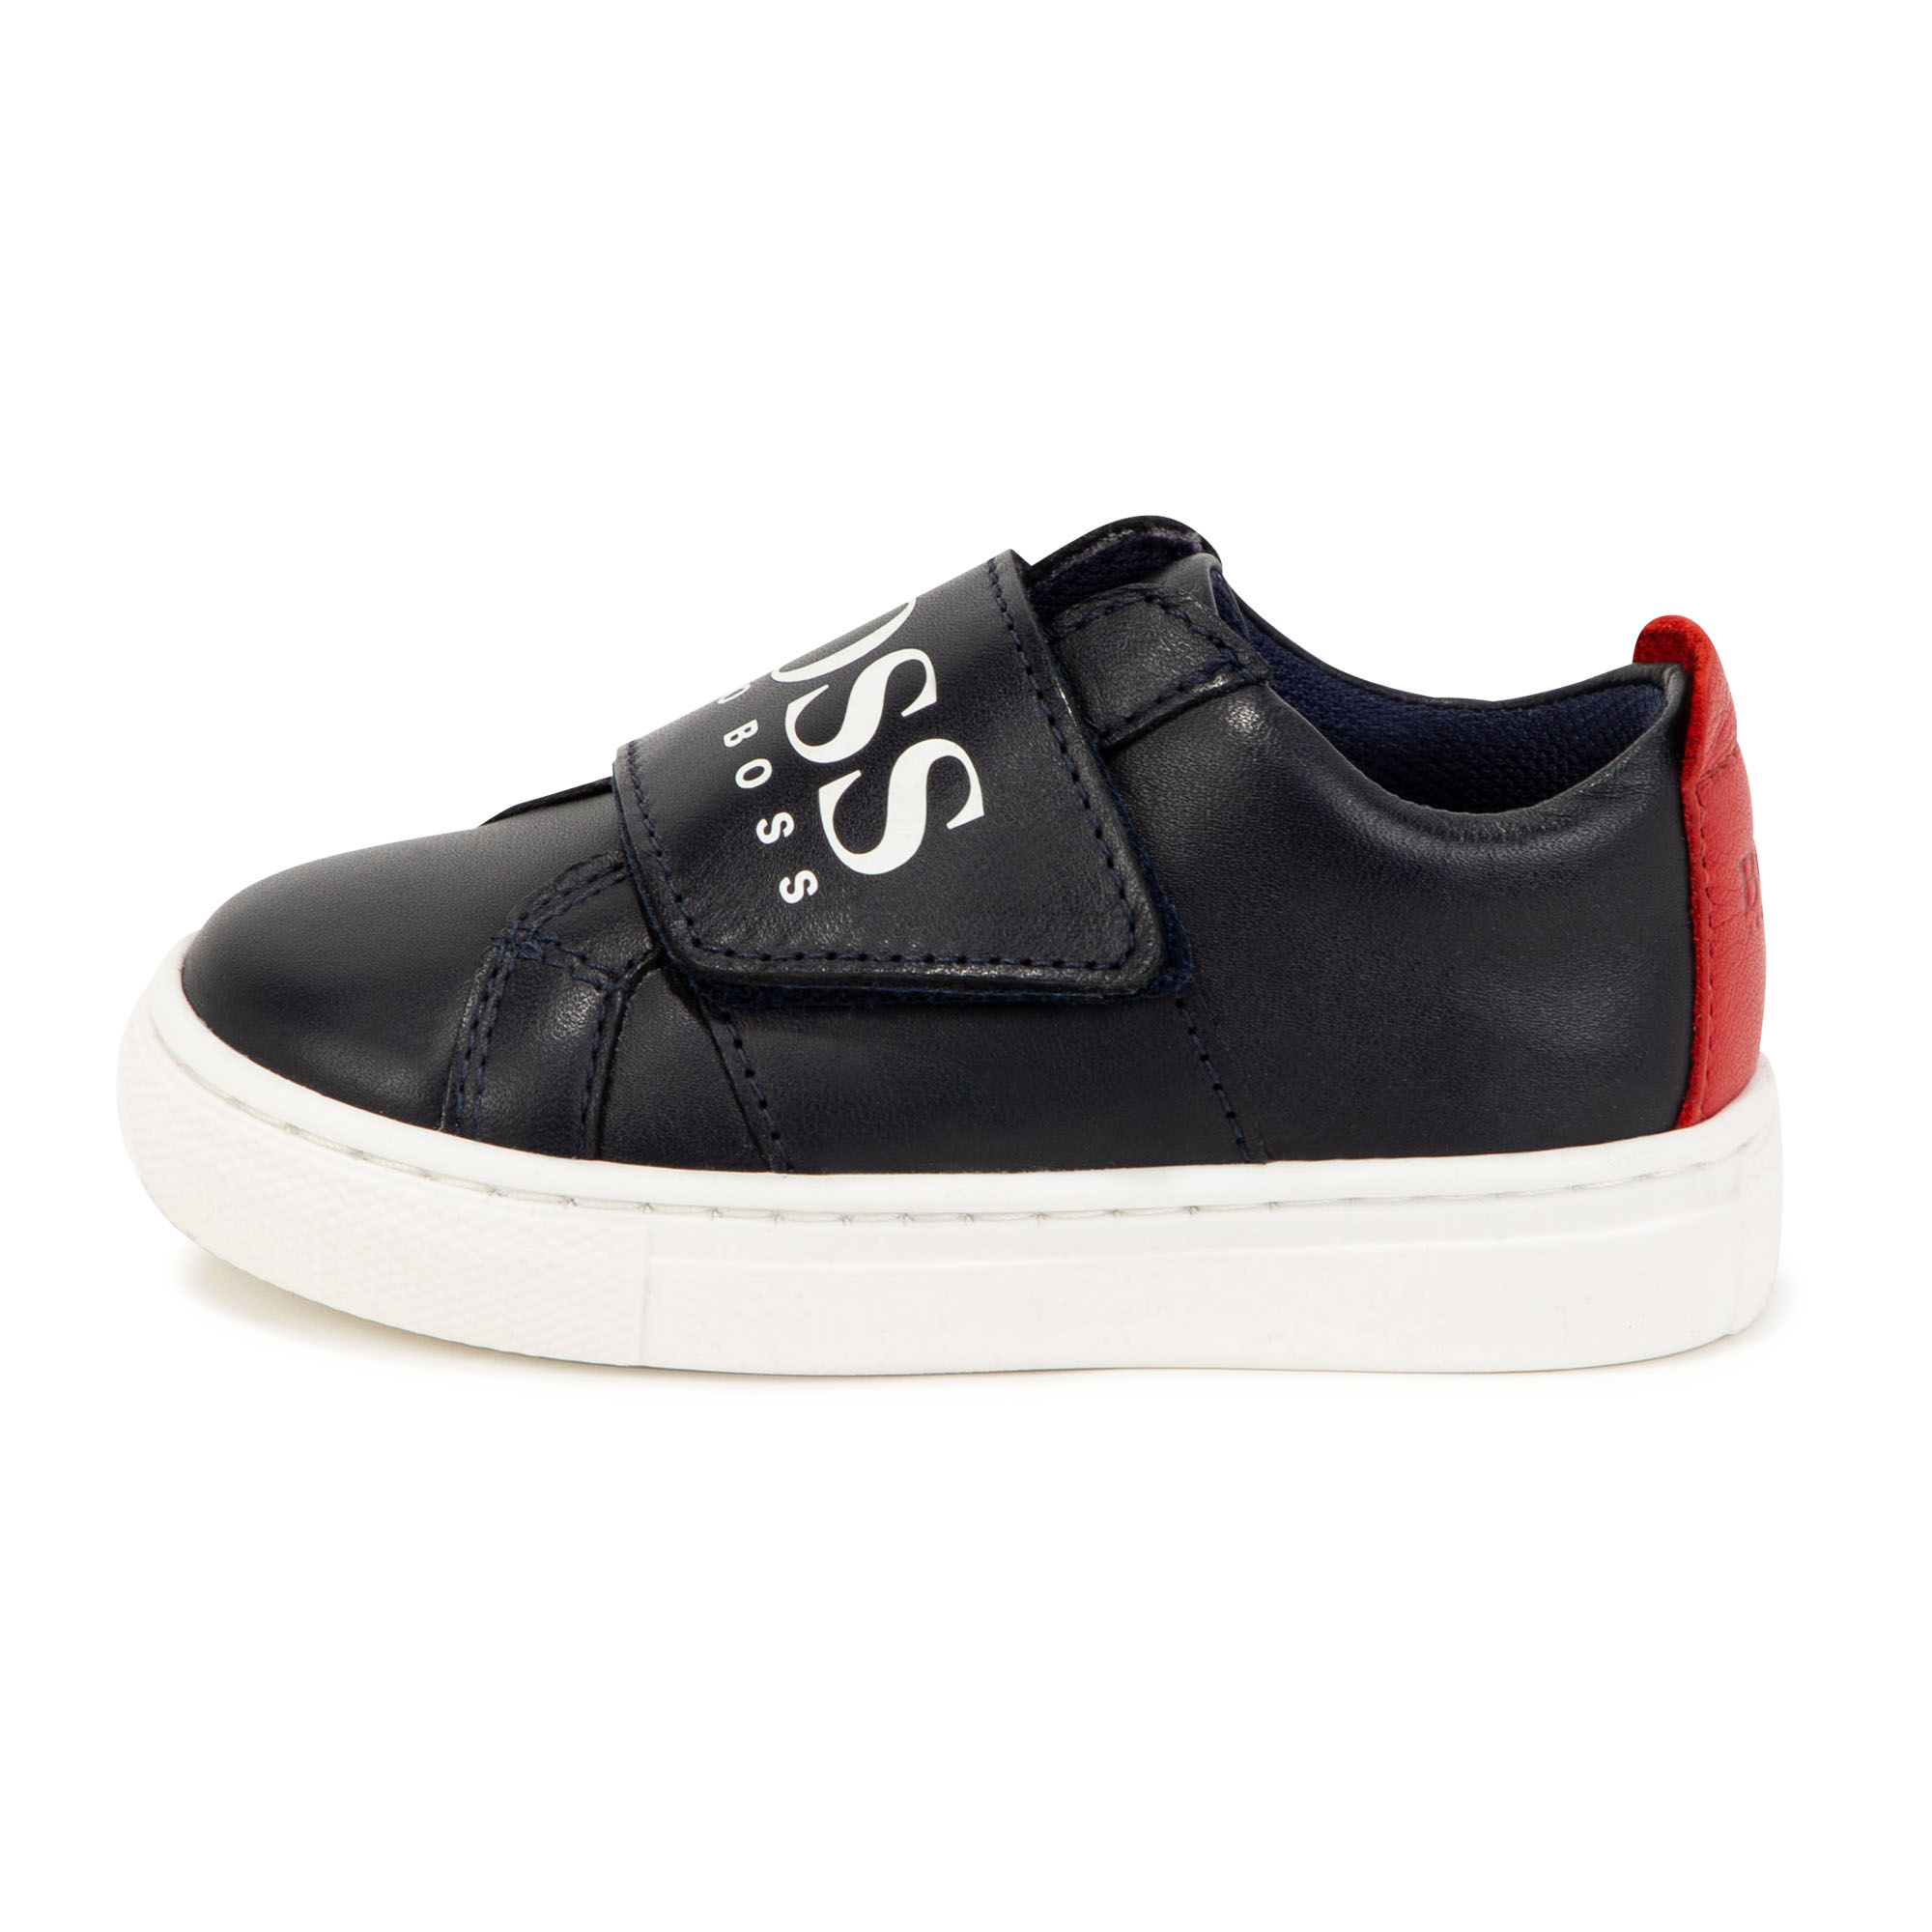 Low-top leather sneakers BOSS for BOY